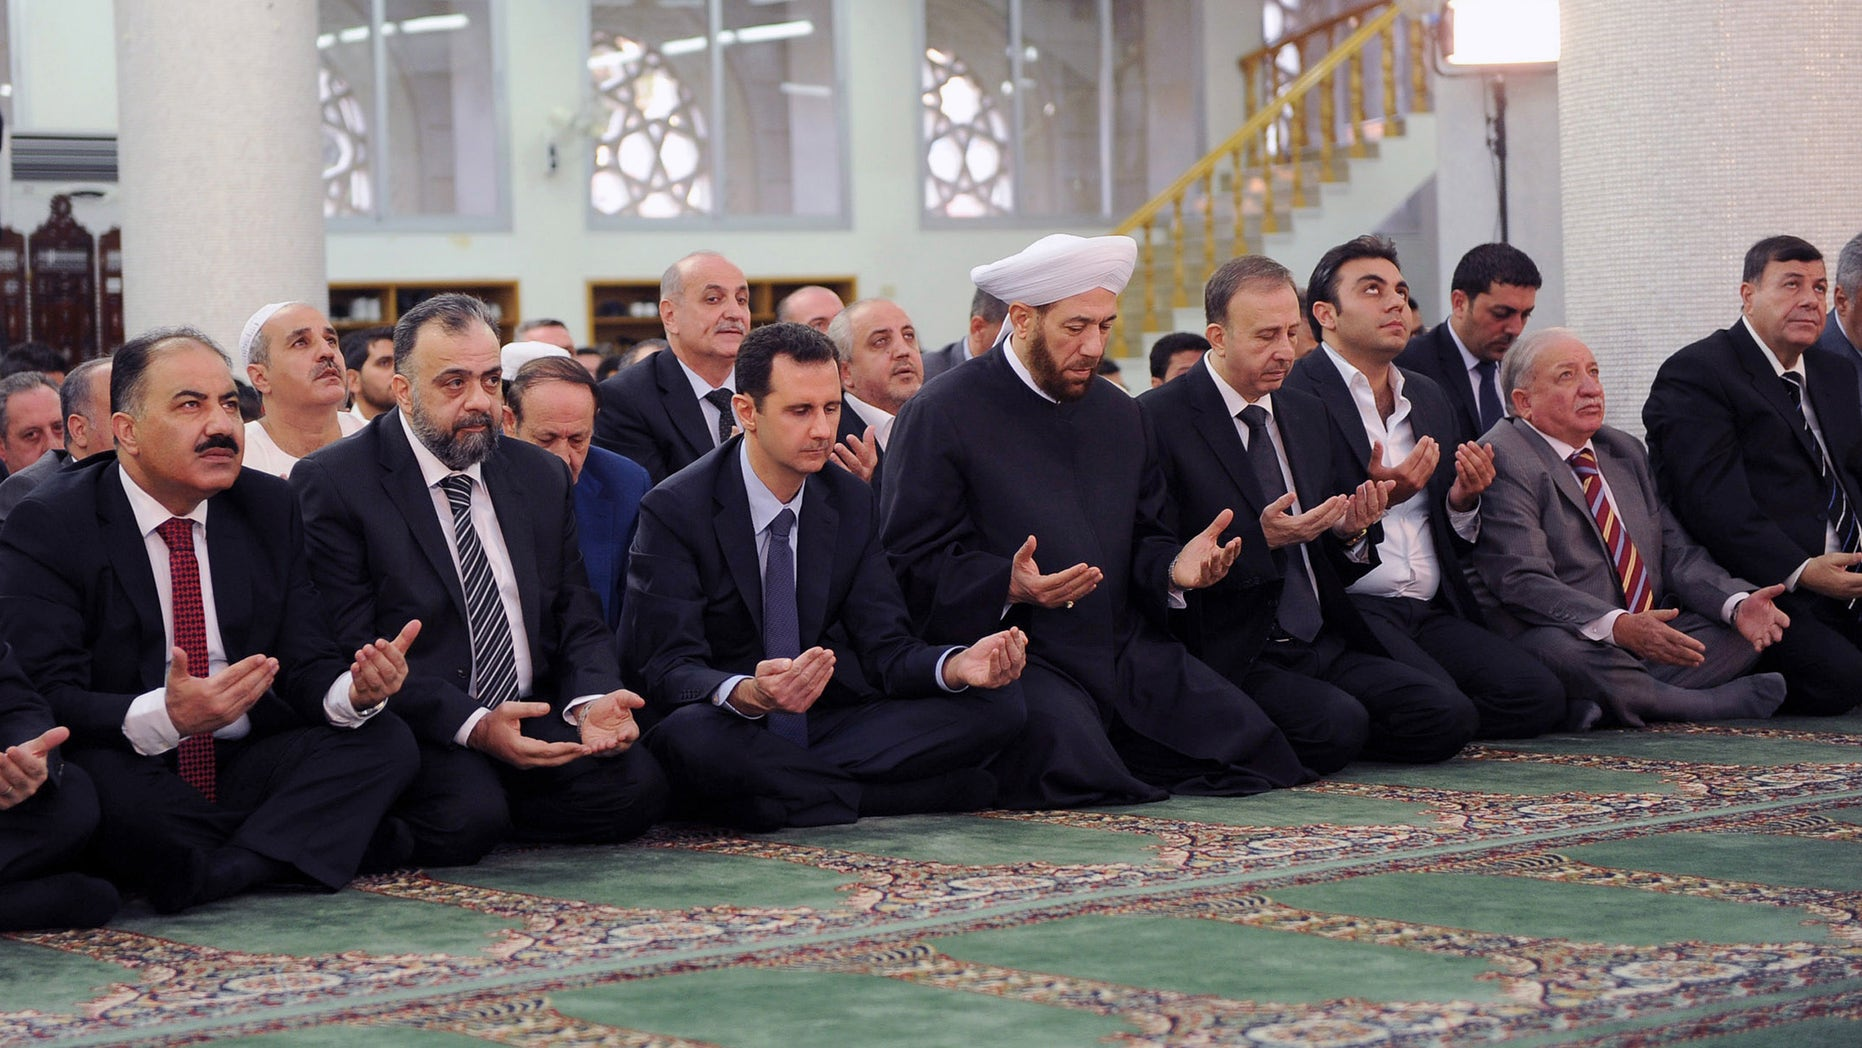 In this photo released by the Syrian official news agency SANA, Syrian President Bashar Assad, third left, prays on the first day of Eid al-Adha at the Sayeda Hassiba mosque, in Damascus, Syria, Tuesday, Oct. 15, 2013. (AP Photo/SANA)